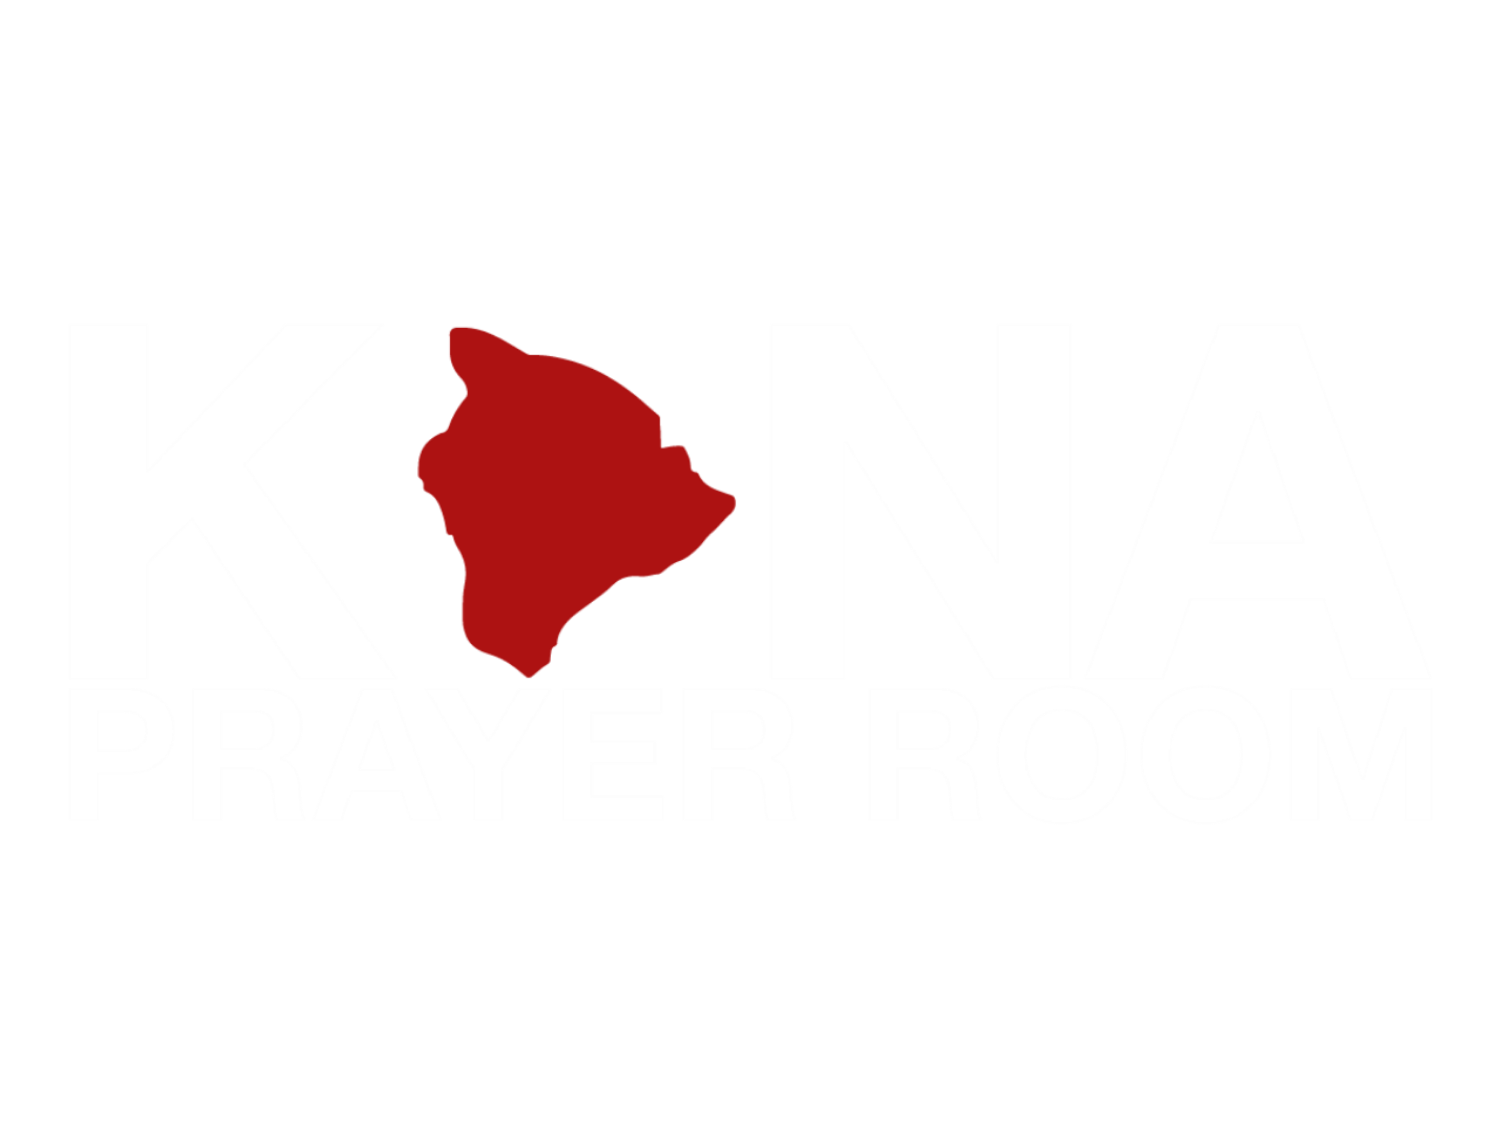 KONA PRAYER ROOM